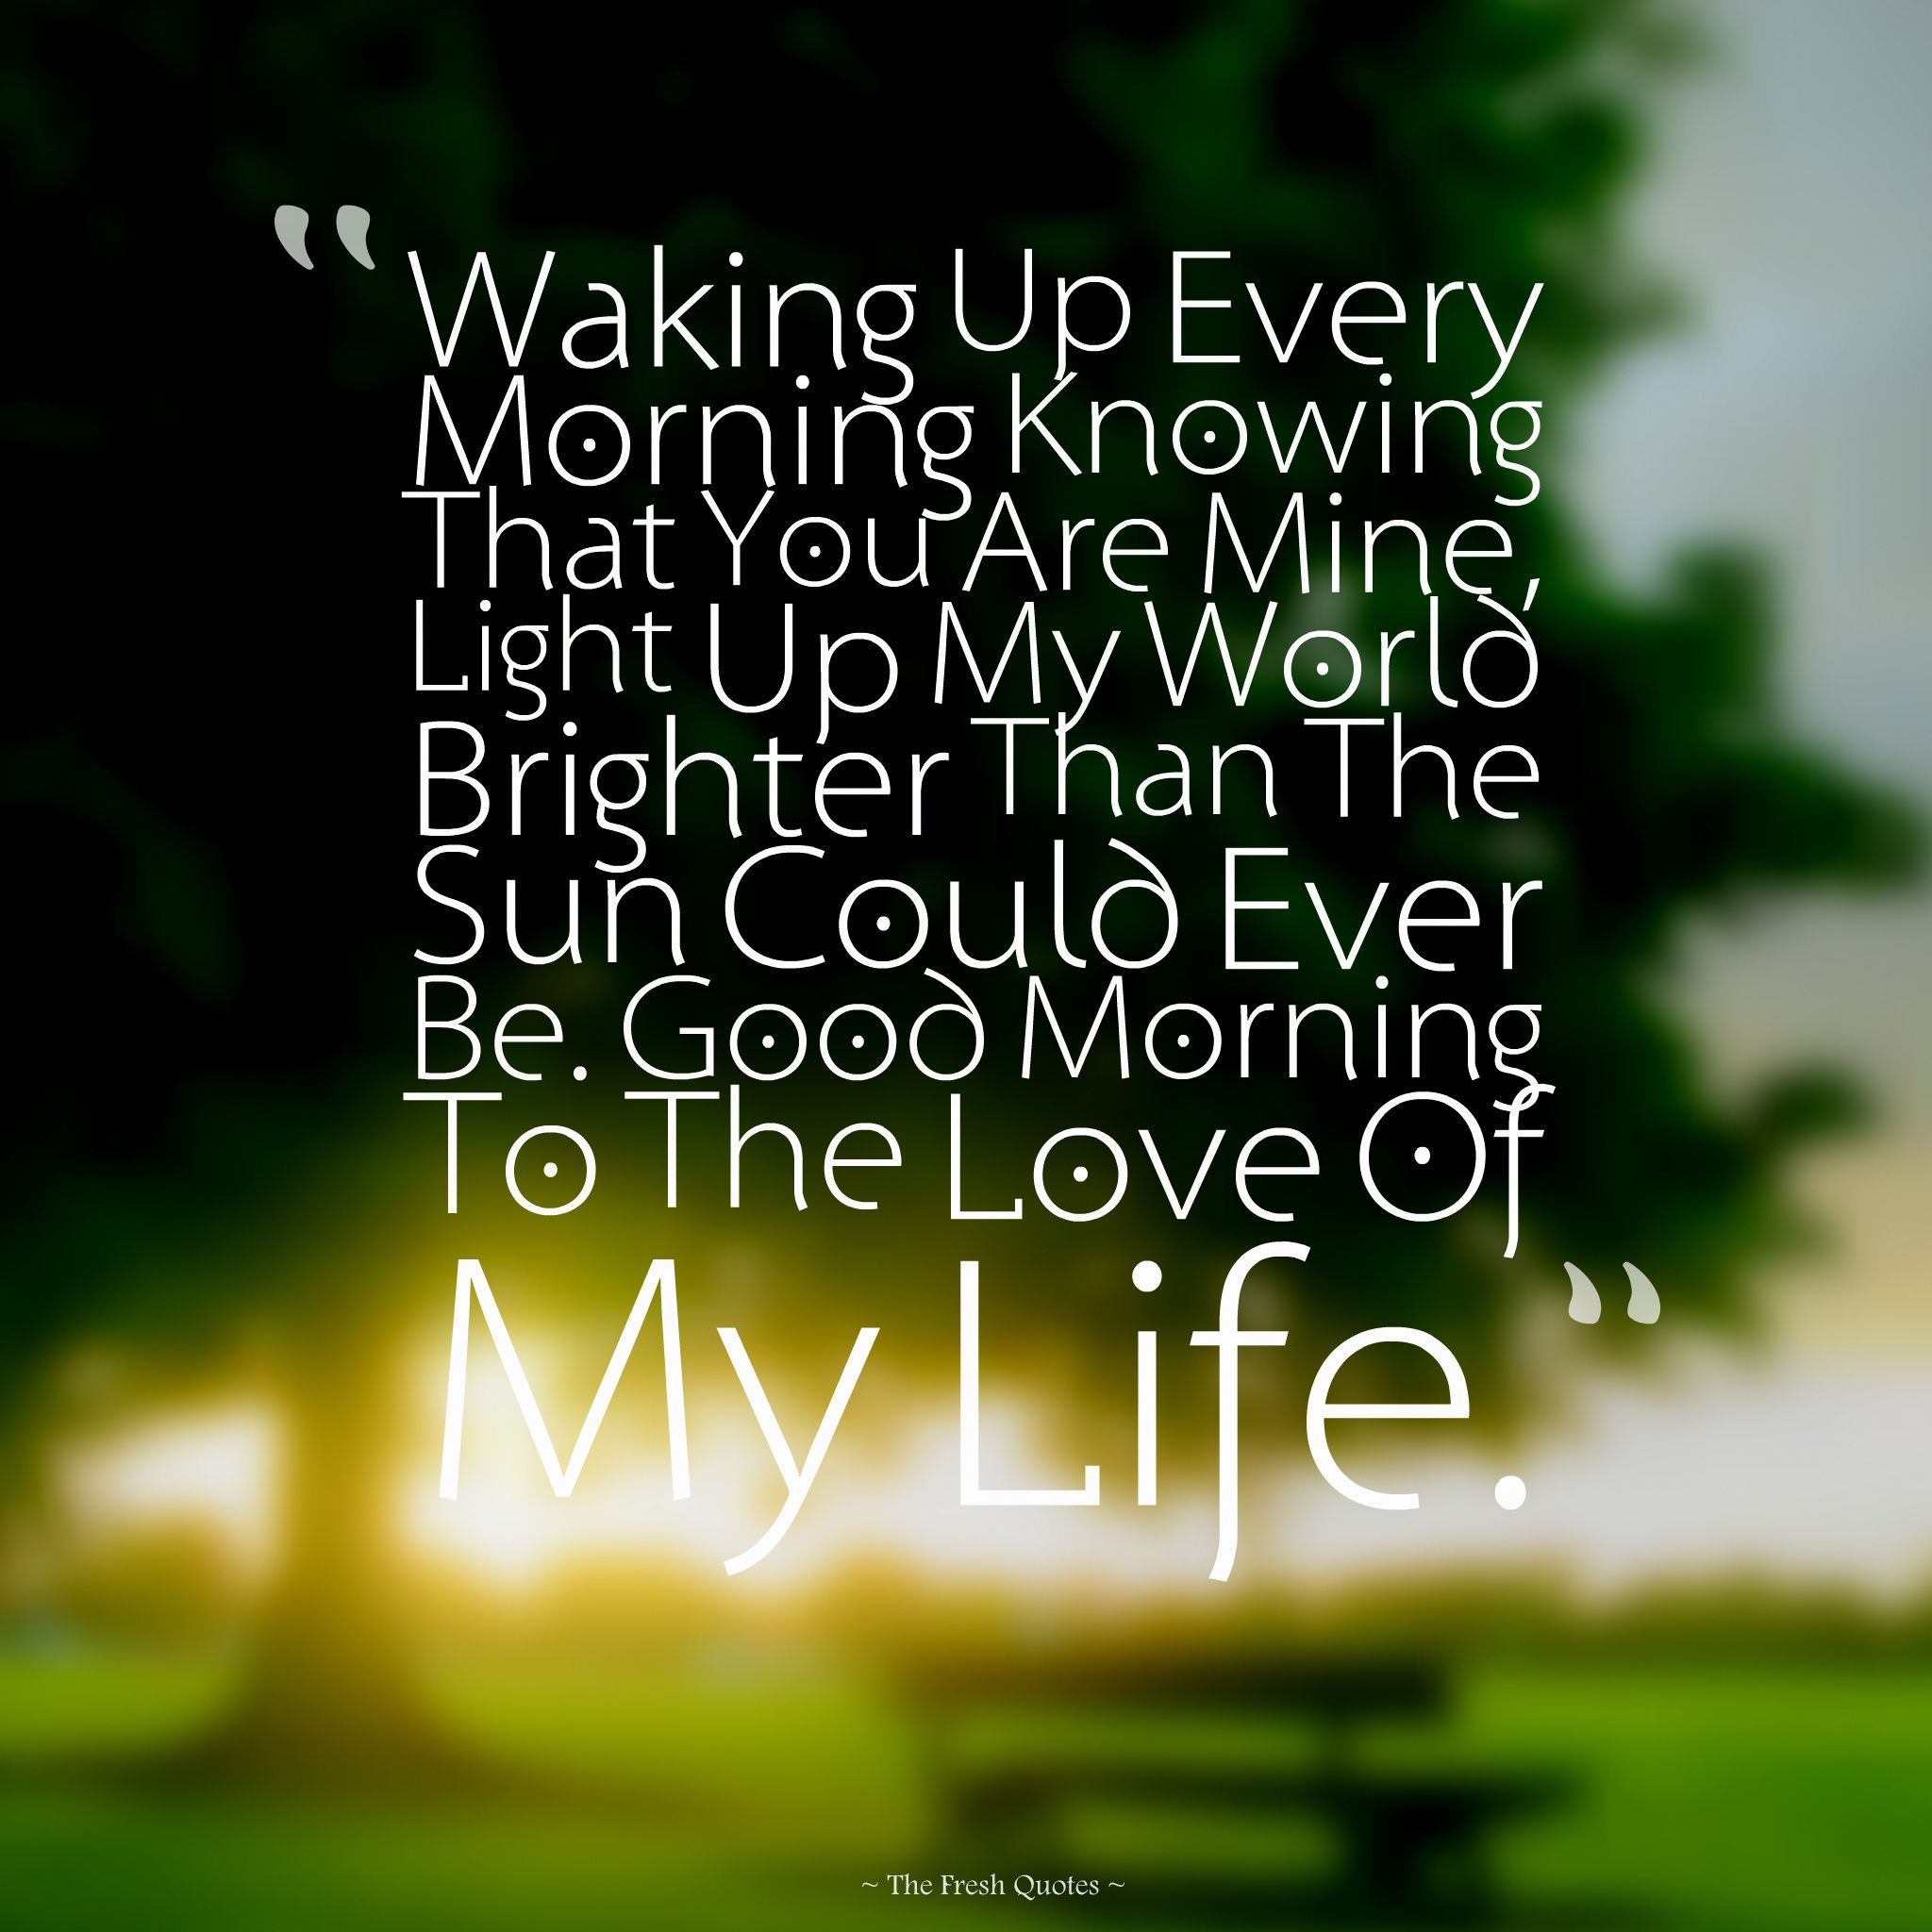 Pin by leah hunter on love and light pinterest morning quotes my girlfriend quotes good morning wishes quotes morning quotes images romantic good morning m4hsunfo